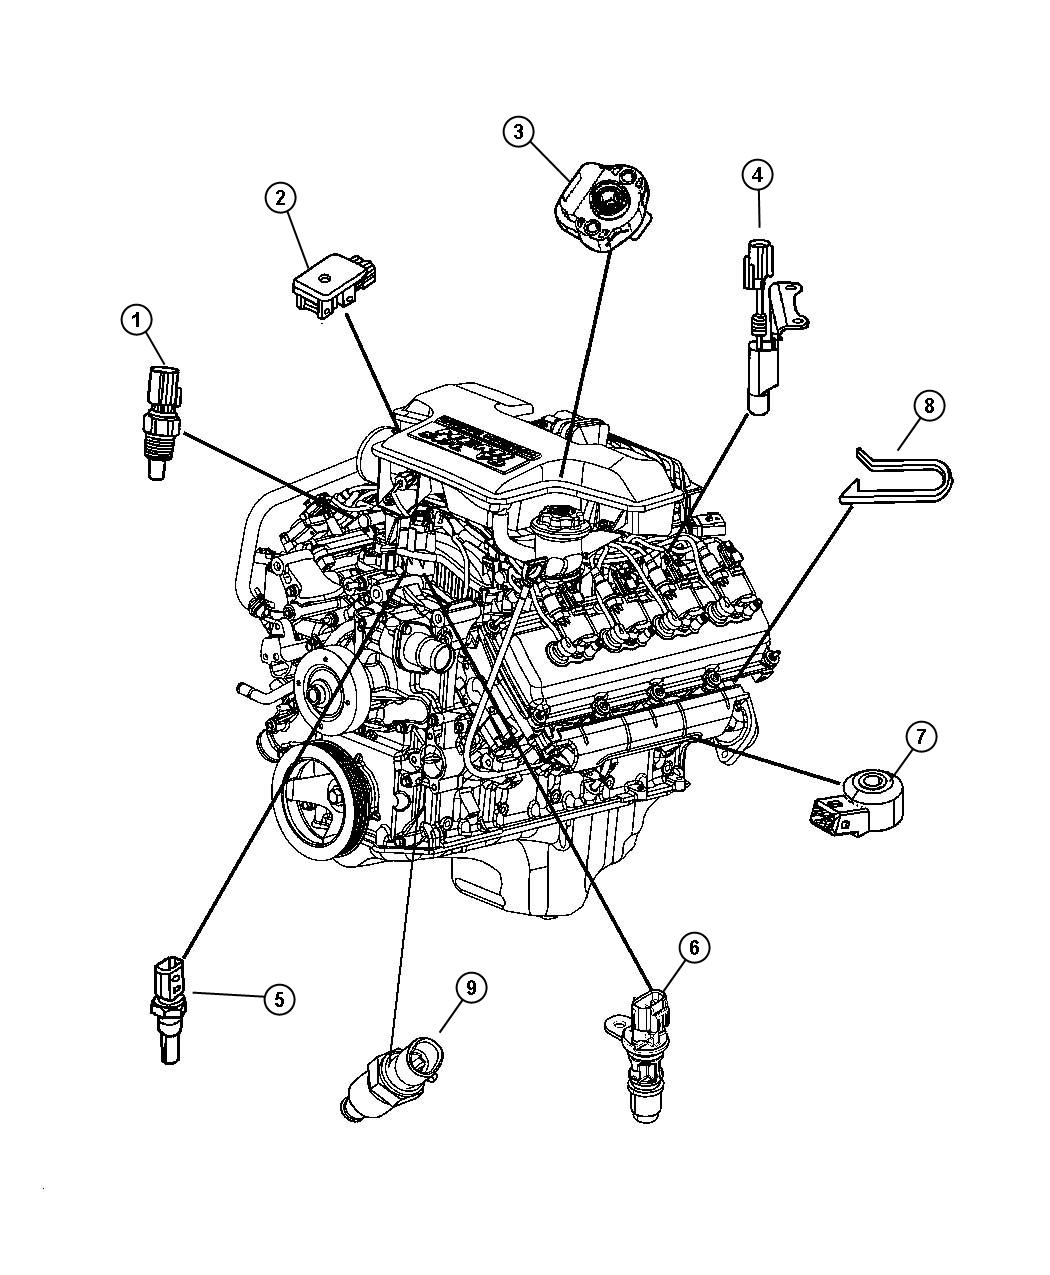 5 7l Chevy Engine Parts Diagram